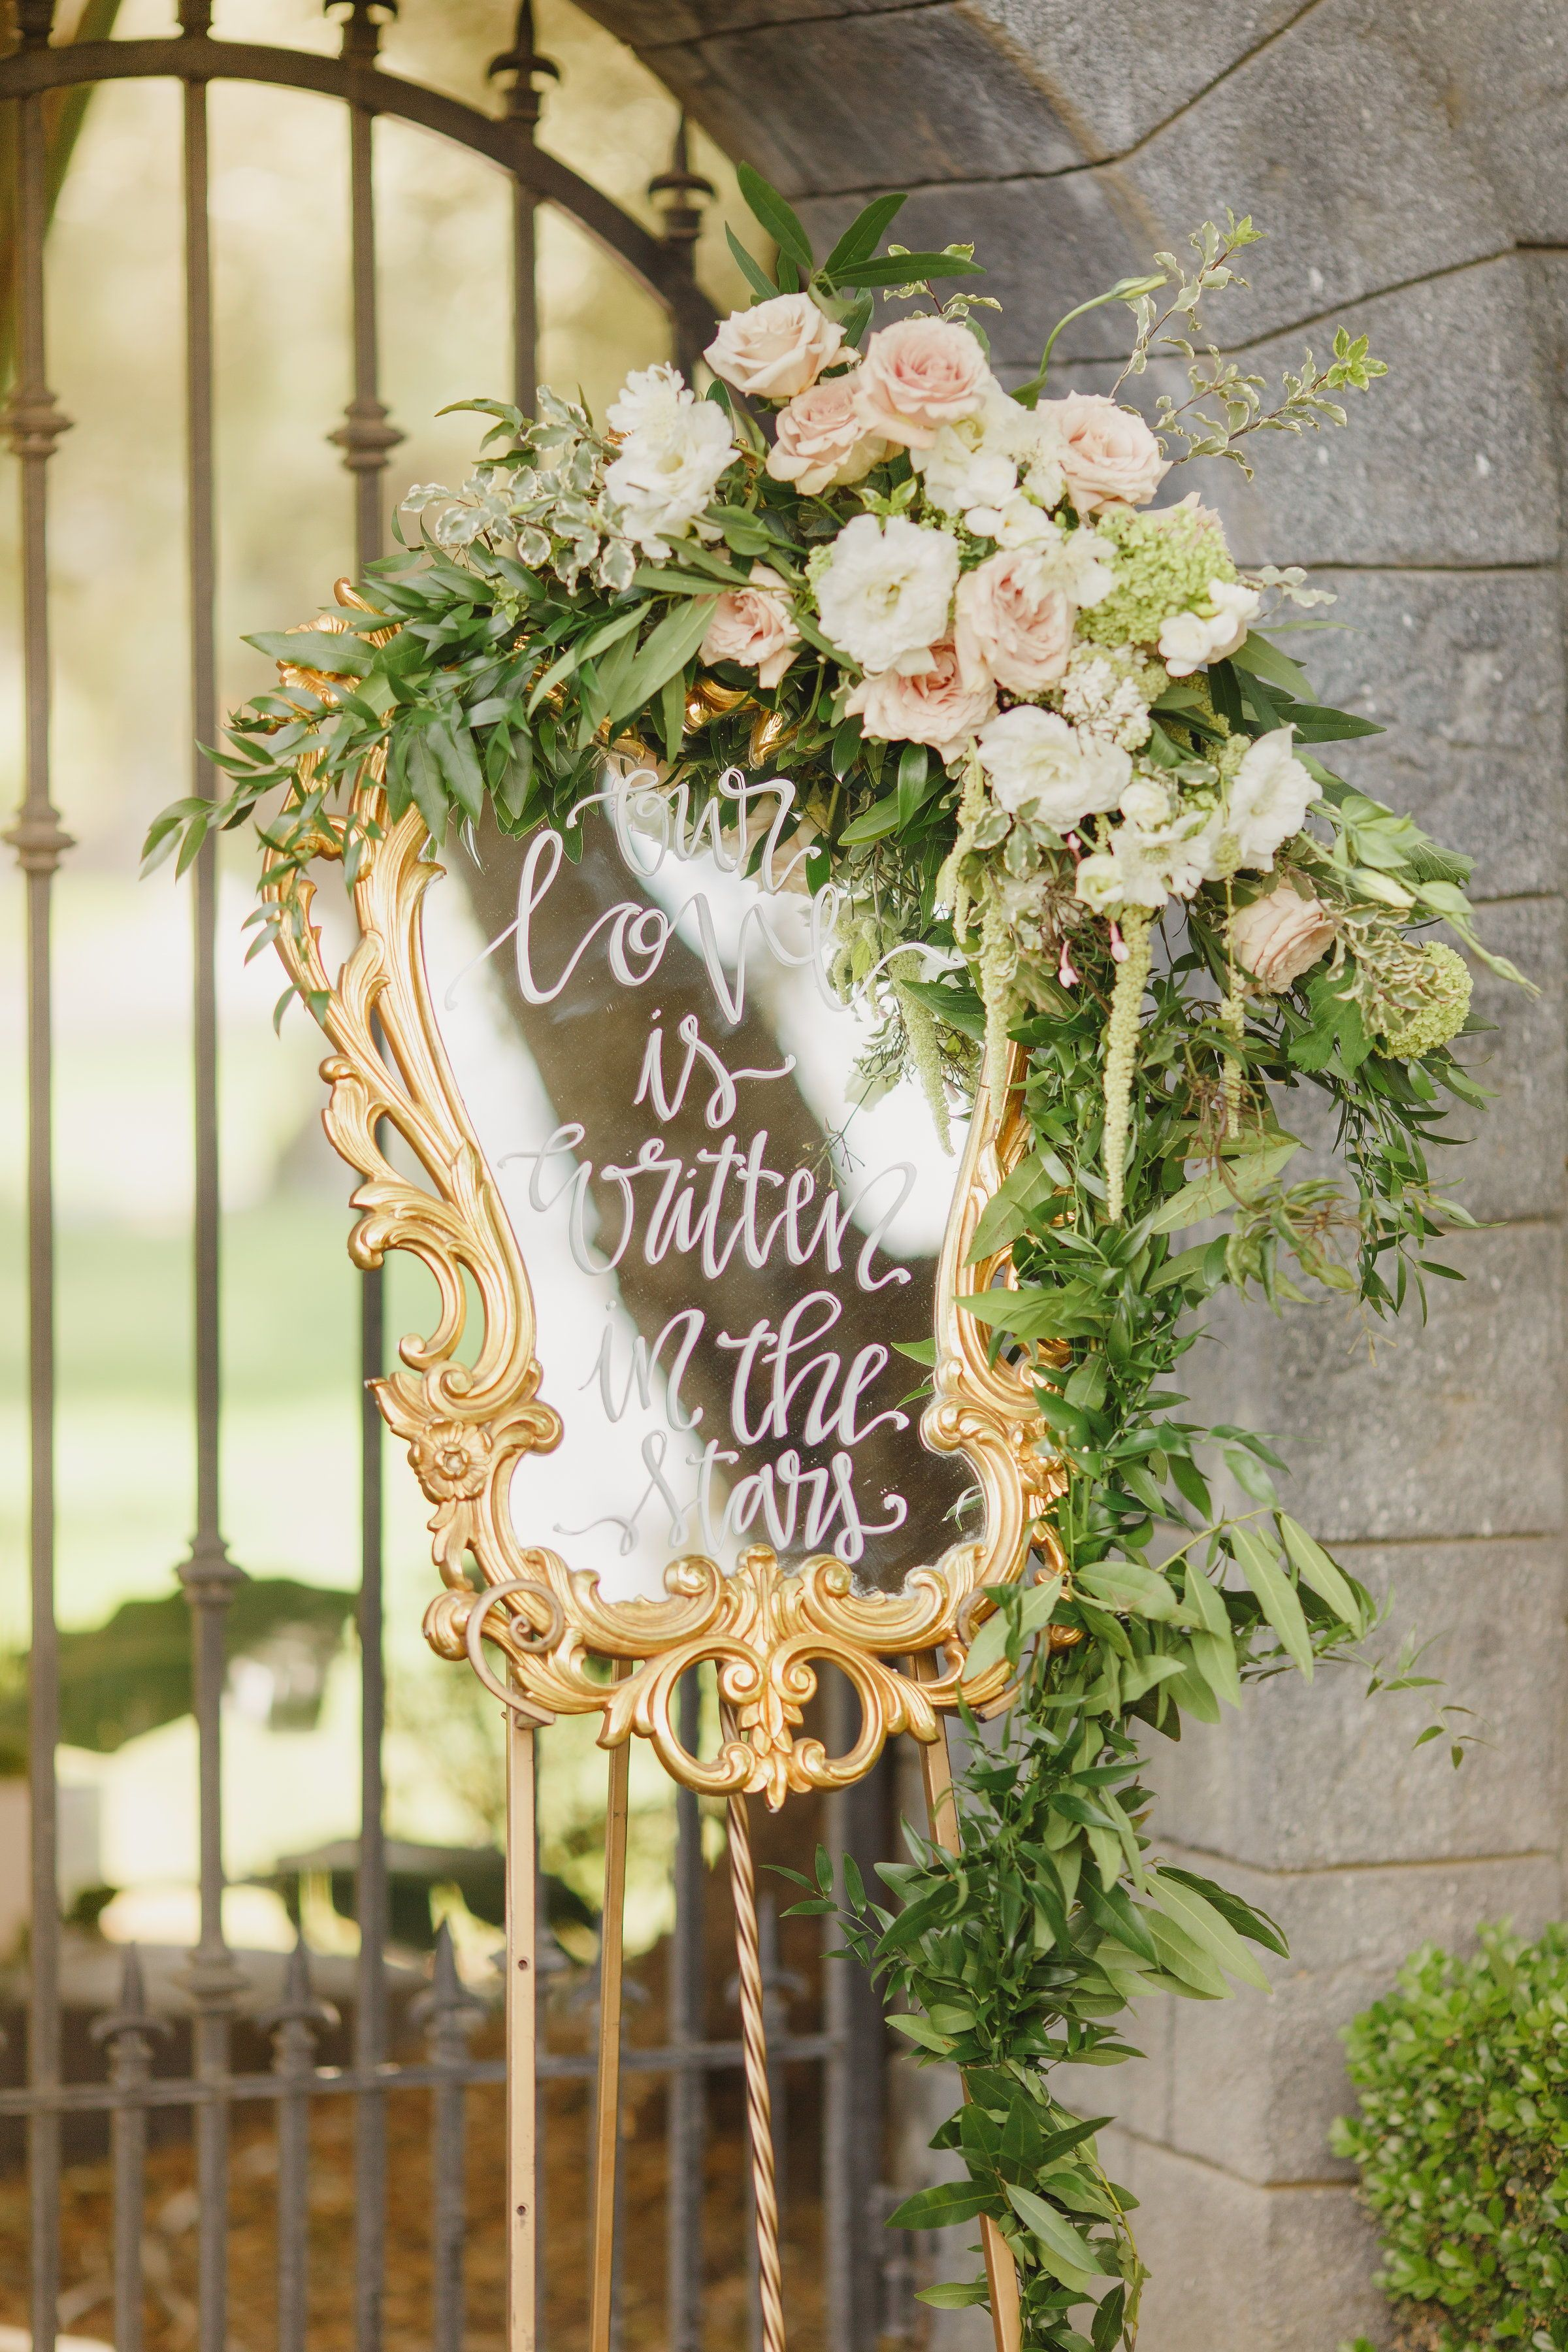 Fairytale wedding ideas. A quote written on a vintage ...